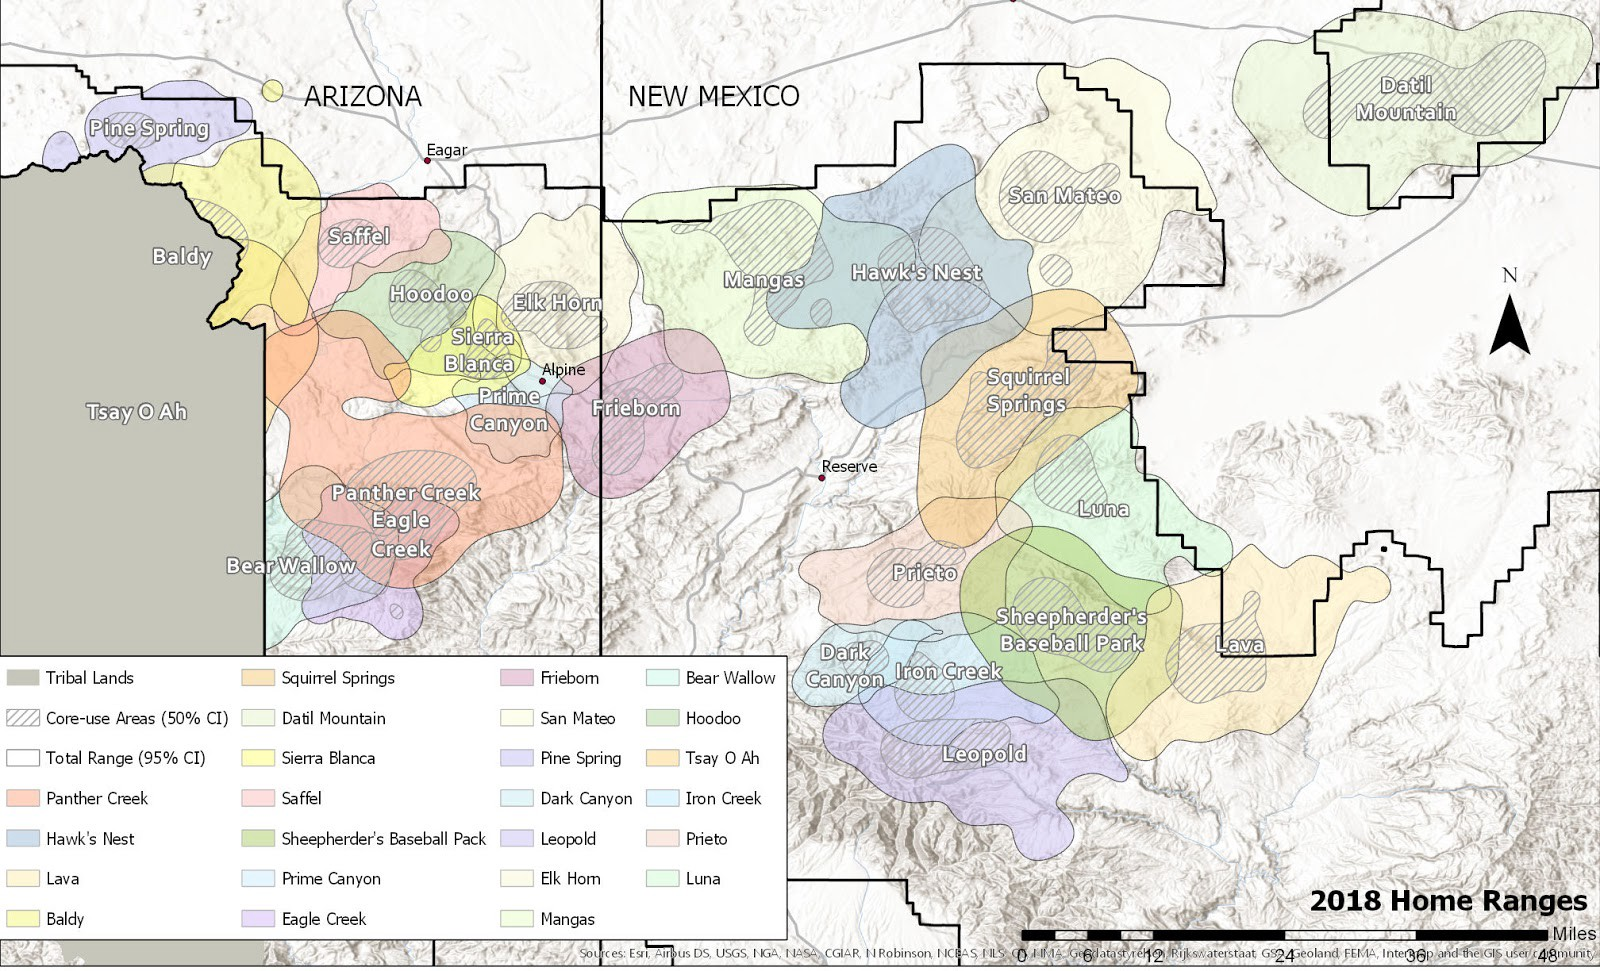 A map of northern Arizona and New Mexico showing the home ranges of known wolf packs.